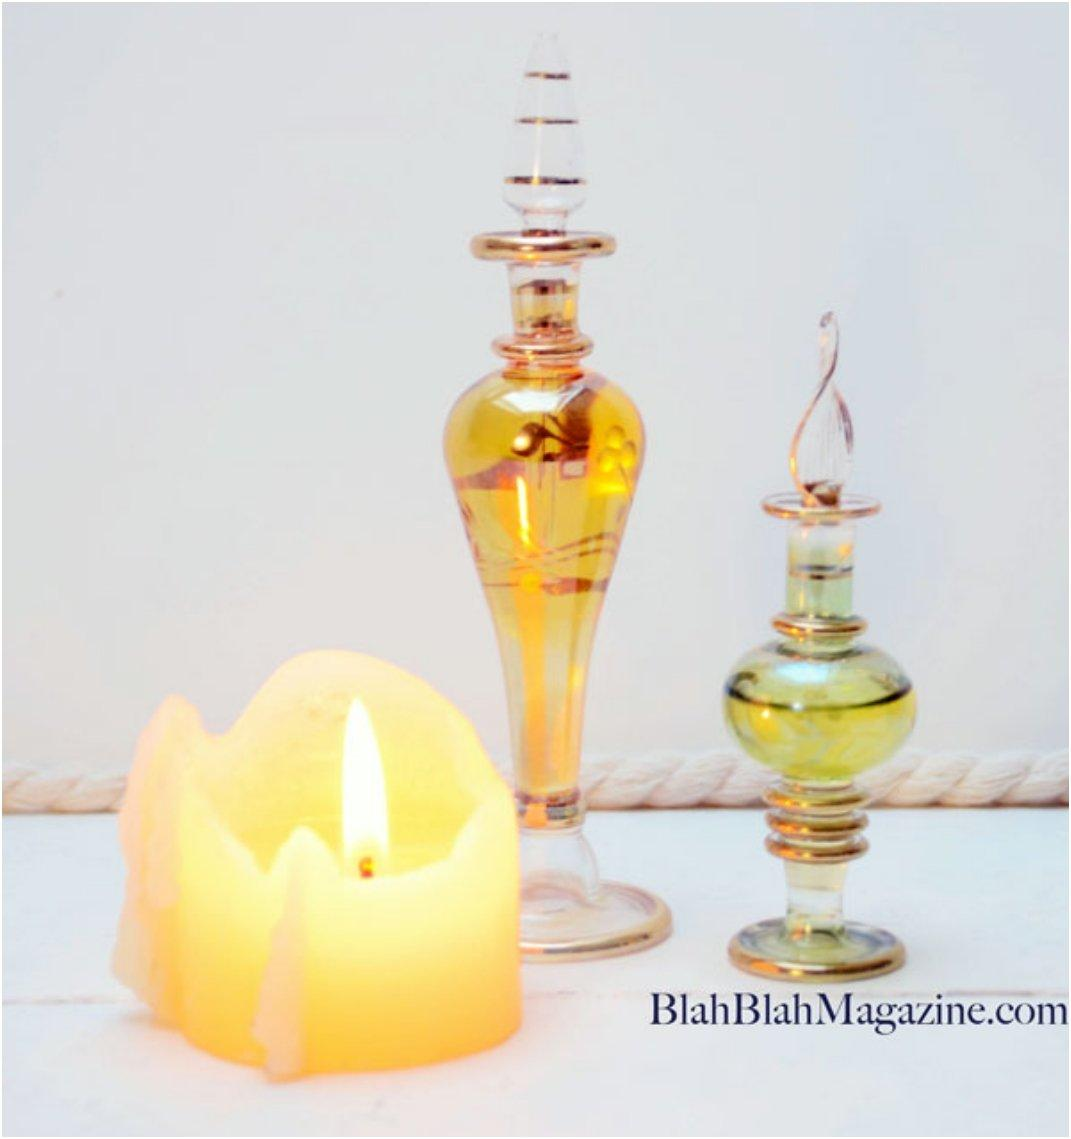 Massage oil for lovers